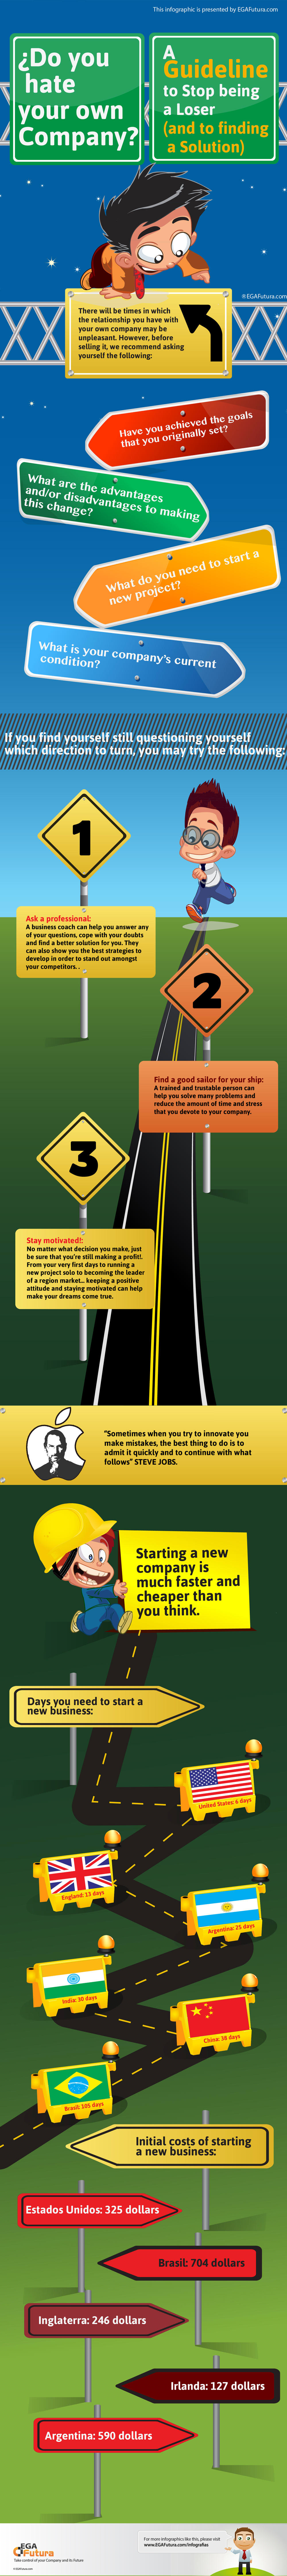 Infographic: Do you hate your own Company? A Guideline to Stop being a Loser (and to finding a Solution)